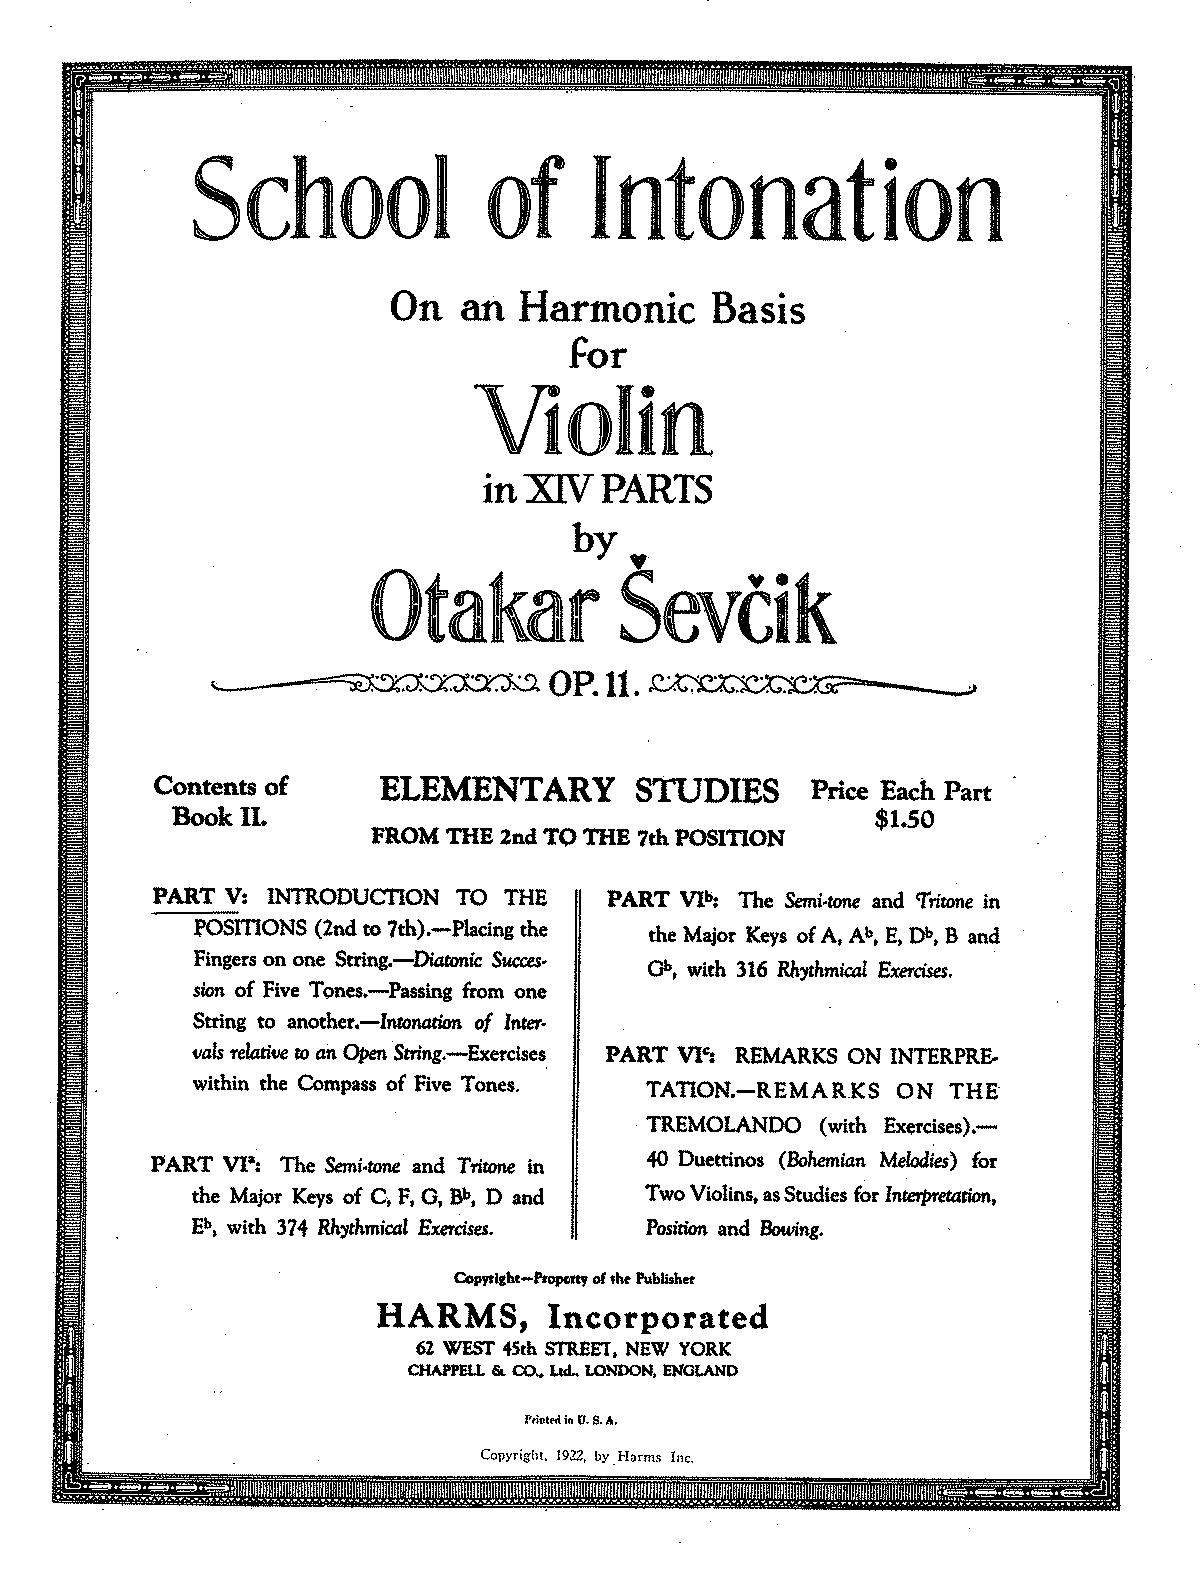 PMLP204290-Sevcik - Op11 School of Intonation On a Harmonic Basis for Violin Part5.pdf